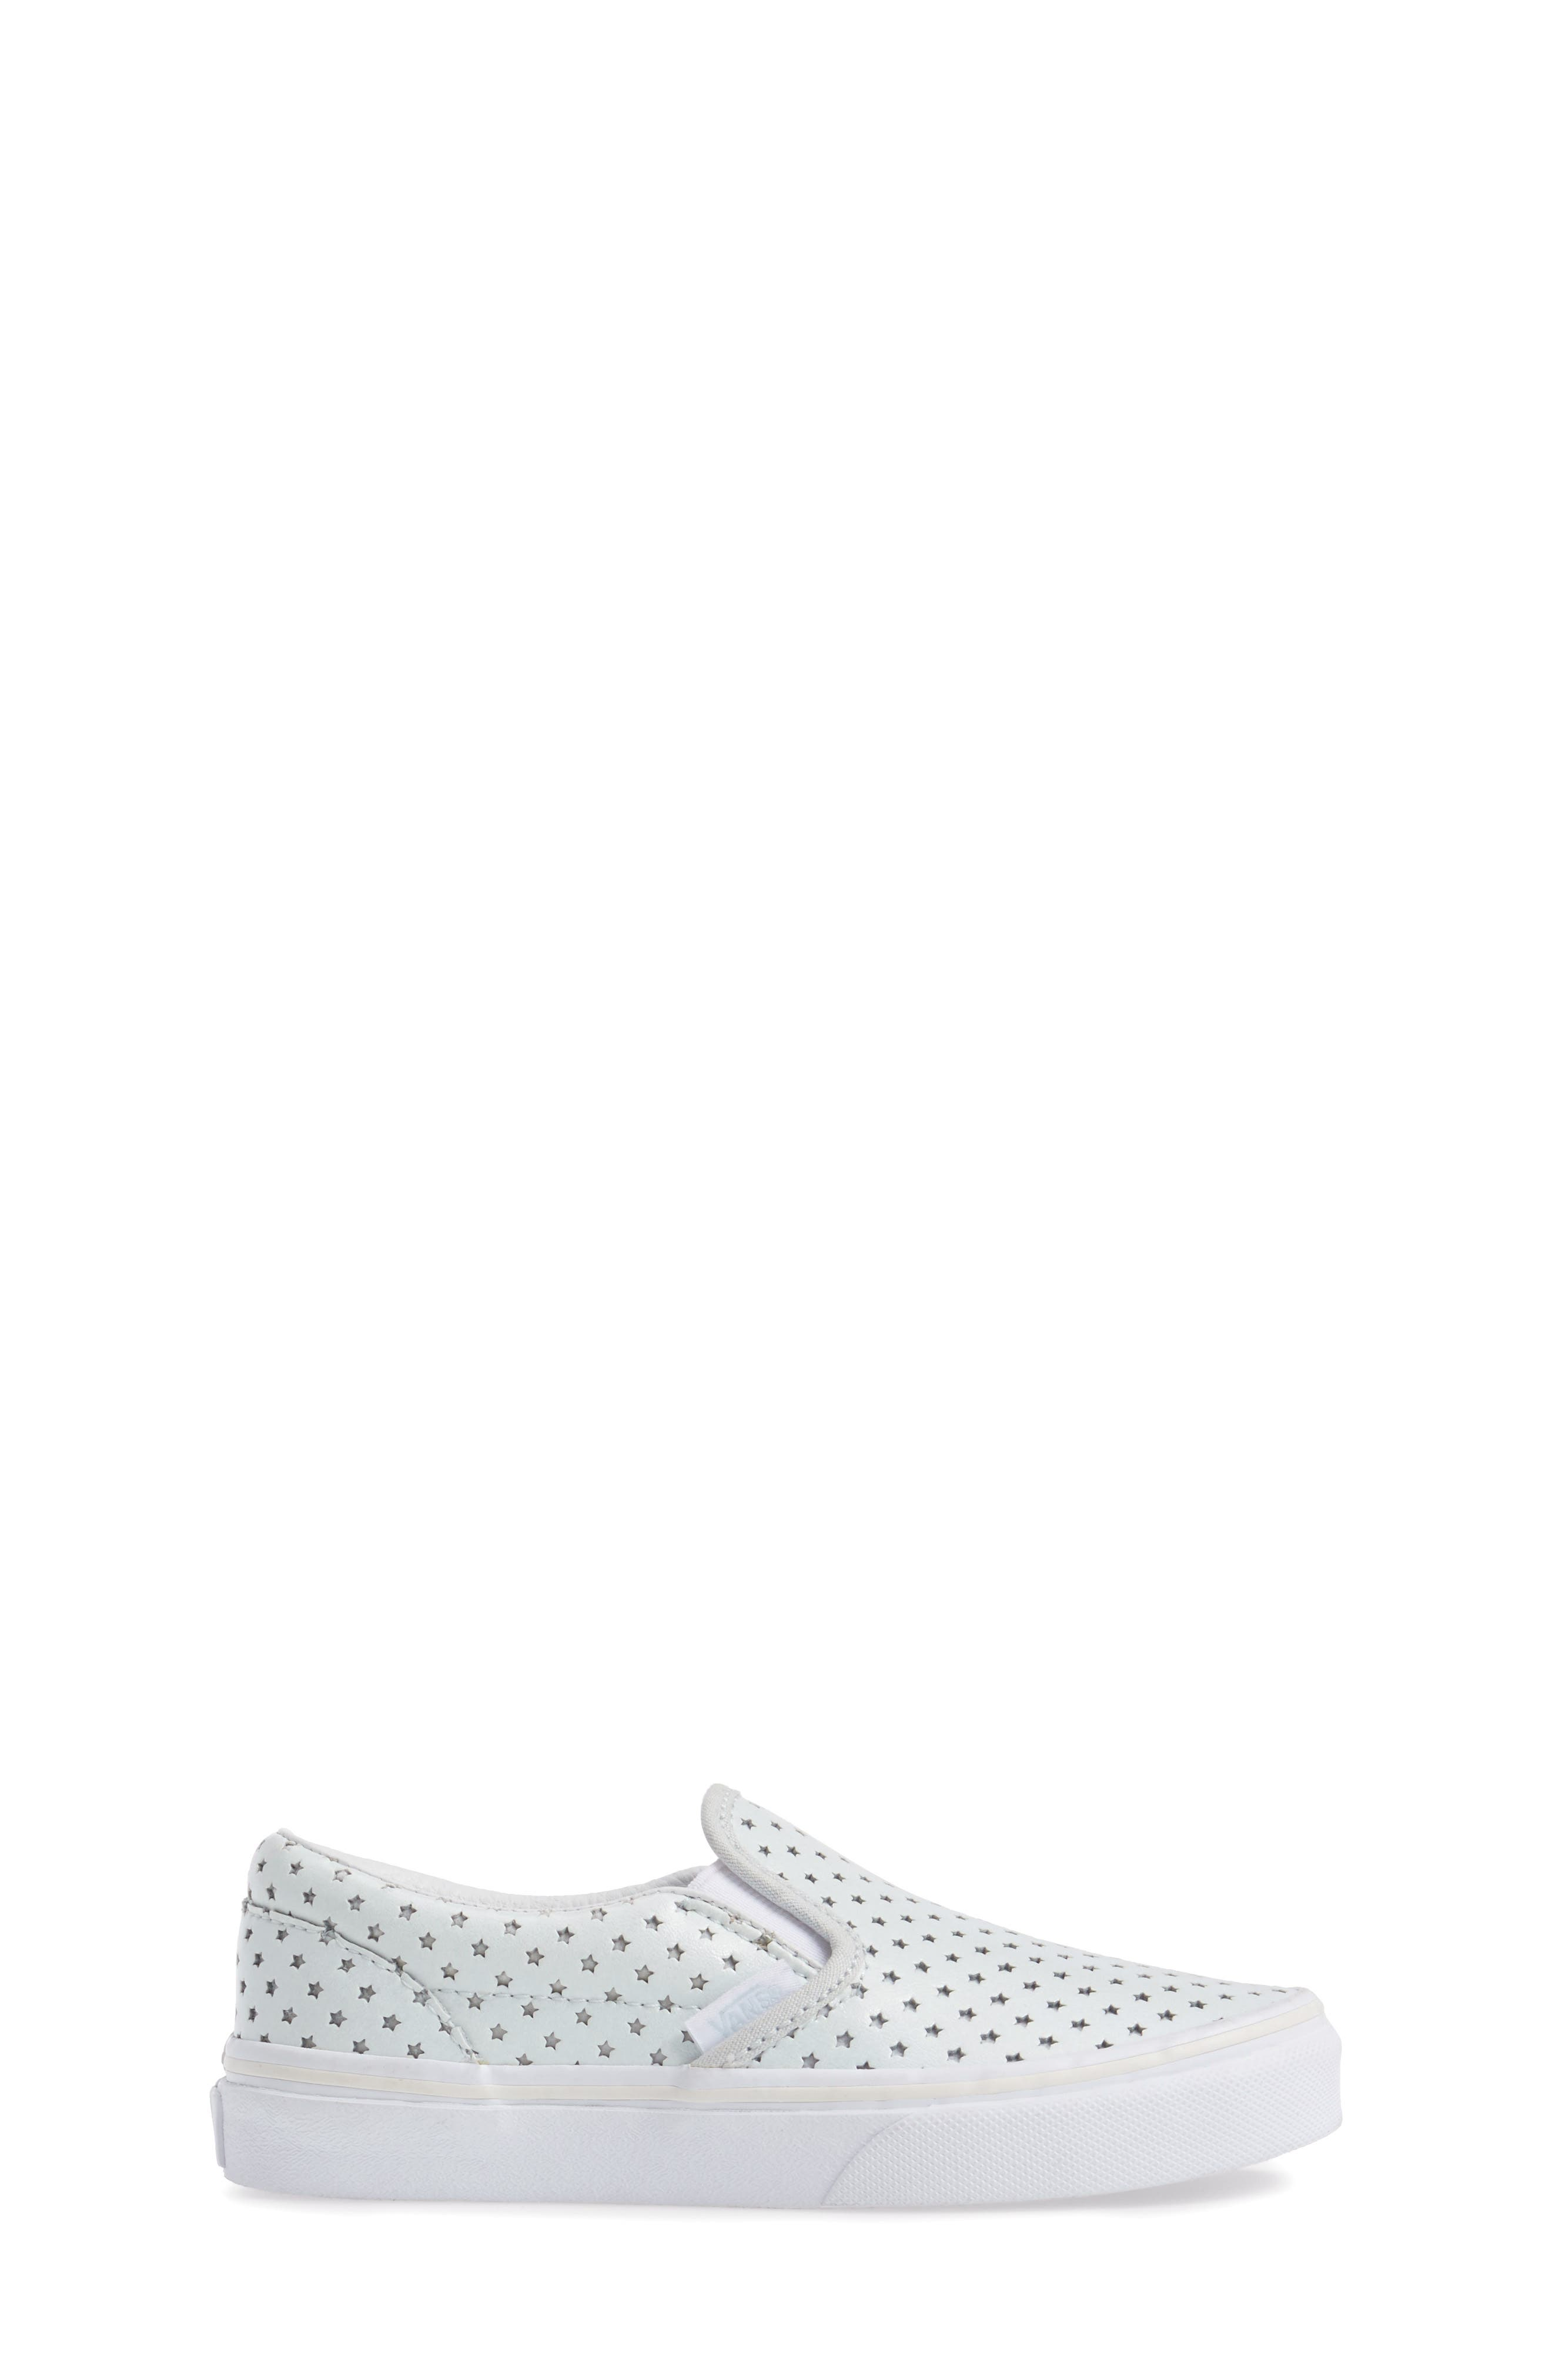 Classic Perforated Slip-On Sneaker,                             Alternate thumbnail 3, color,                             Stars Pearlized Leather